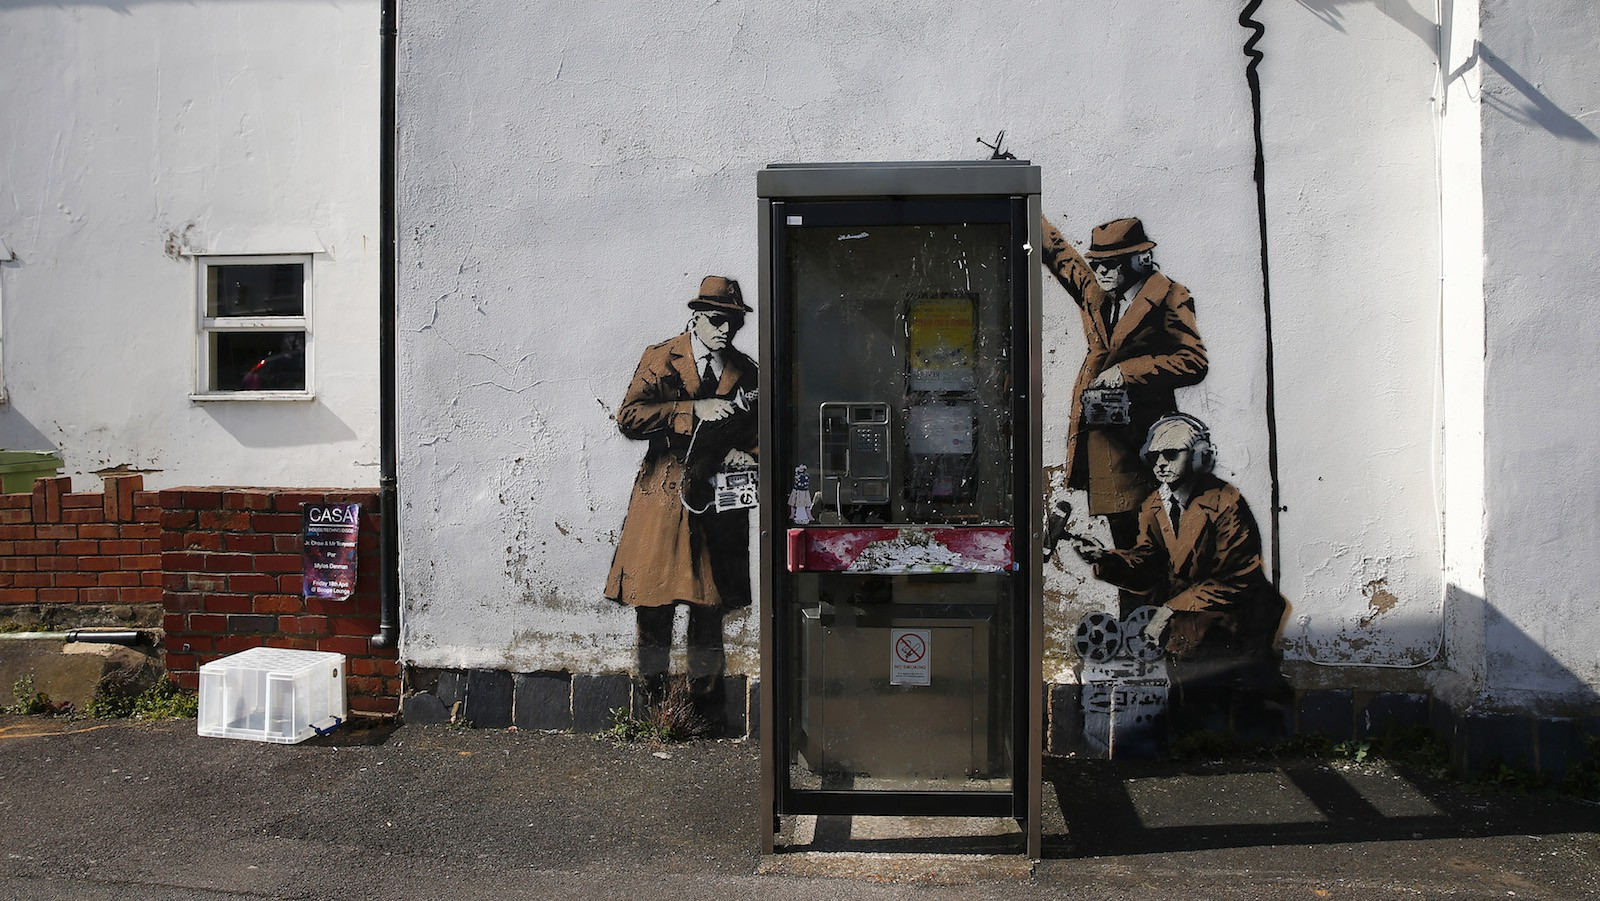 Graffiti art is seen on a wall near the headquarters of Britain's eavesdropping agency, Government Communications Headquarters, known as GCHQ, in Cheltenham, western England April 16, 2014. British media have attributed the new work to acclaimed British street artist Banksy, as a spoof on recent government spying scandals exposed by former U.S. National Security Agency contractor, Edward Snowden, who said that Britain's agency, GCHQ tapped fiber-optic cables carrying international phone and internet traffic and is sharing vast quantities of personal information with the NSA.  REUTERS/Eddie Keogh (BRITAIN - Tags: SOCIETY POLITICS) - RTR3LJKB